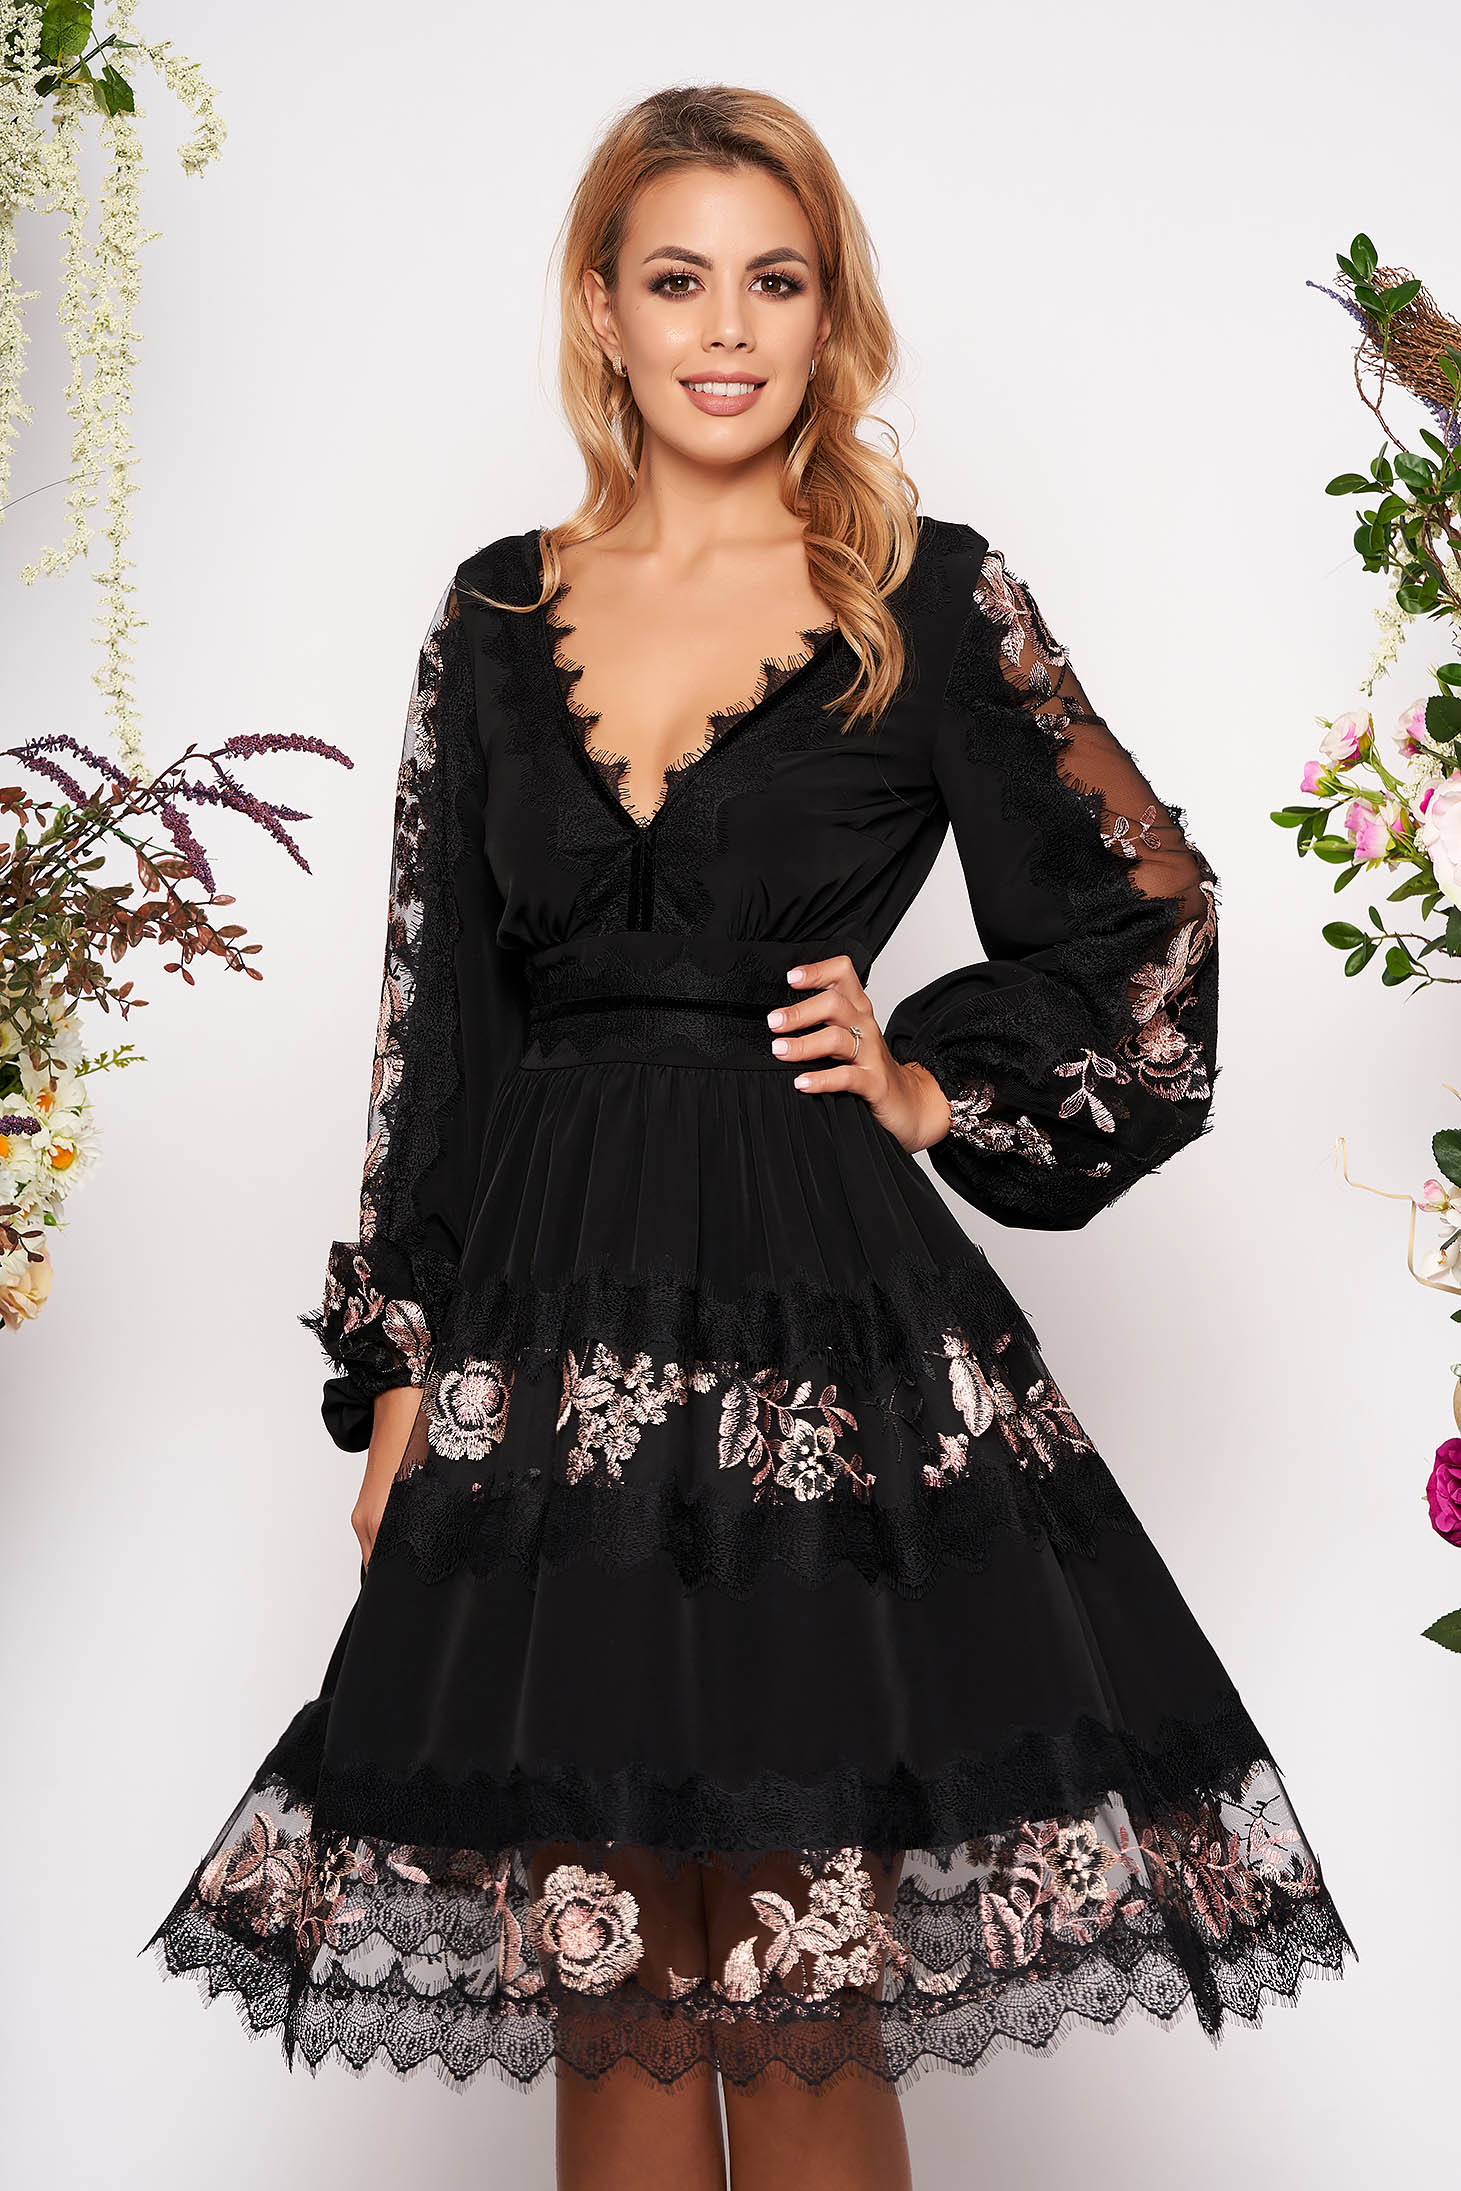 Black elegant flaring cut dress voile fabric with lace details